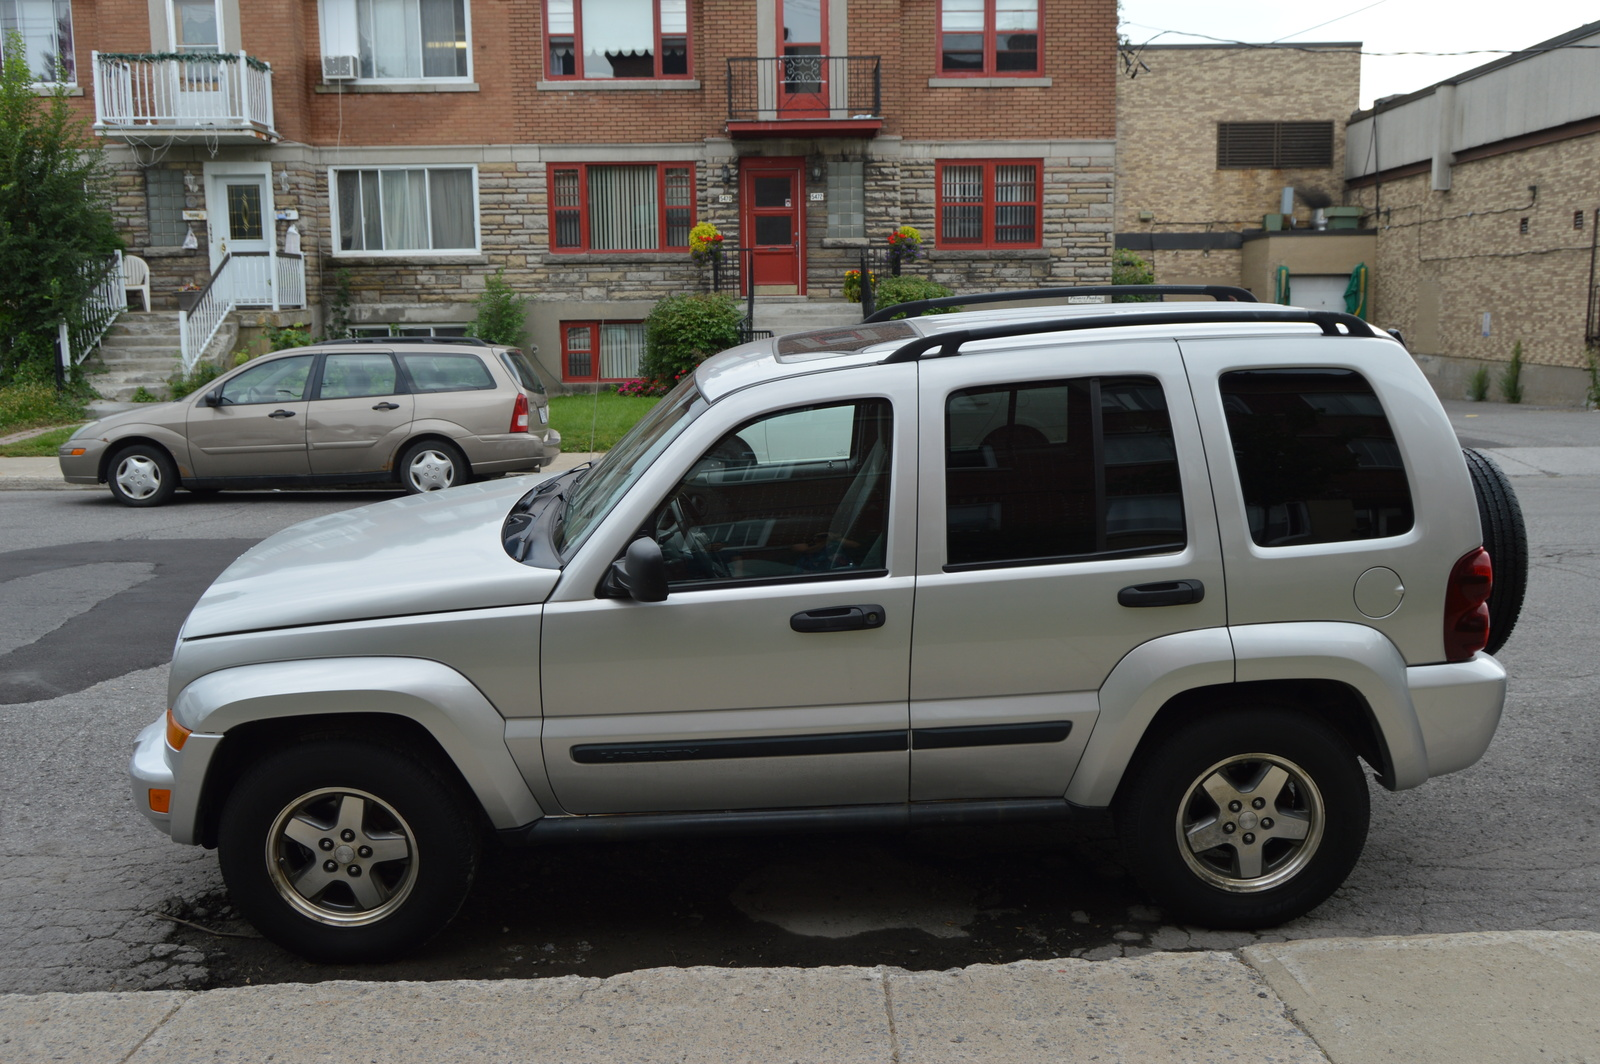 jeep liberty questions - can i put my own car for sell? - cargurus